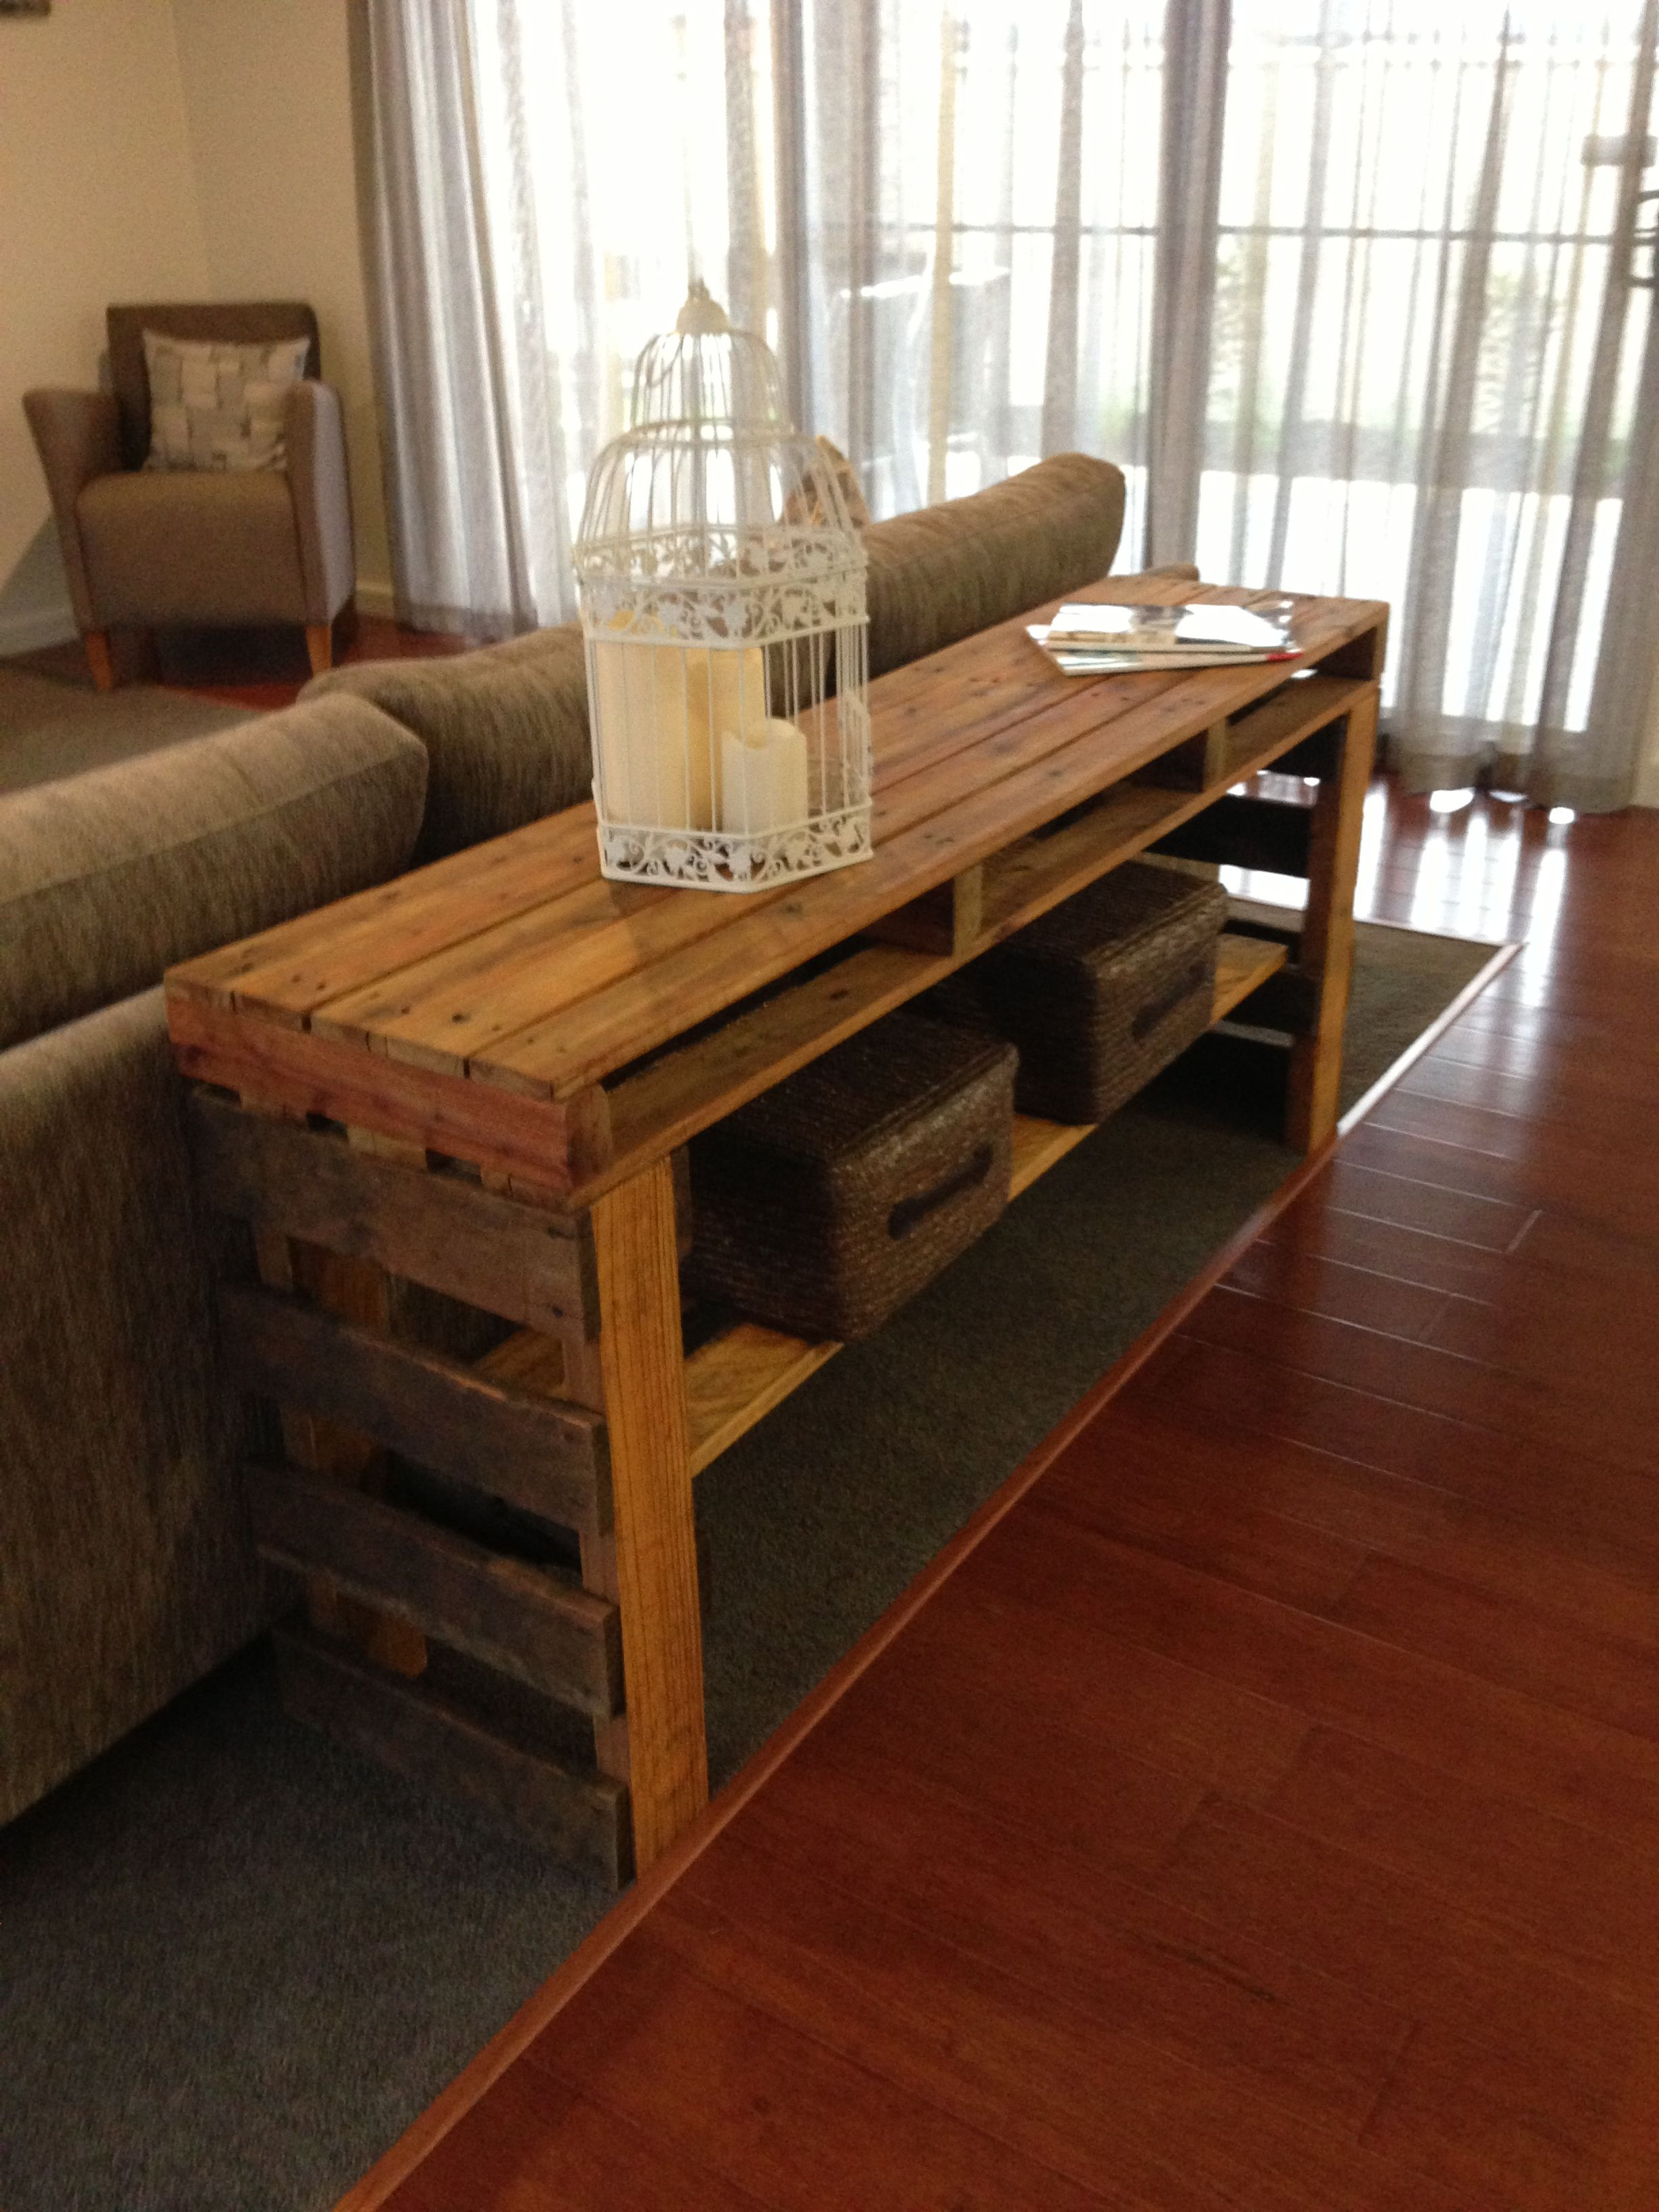 Pallet table Make one like this for the bar outside